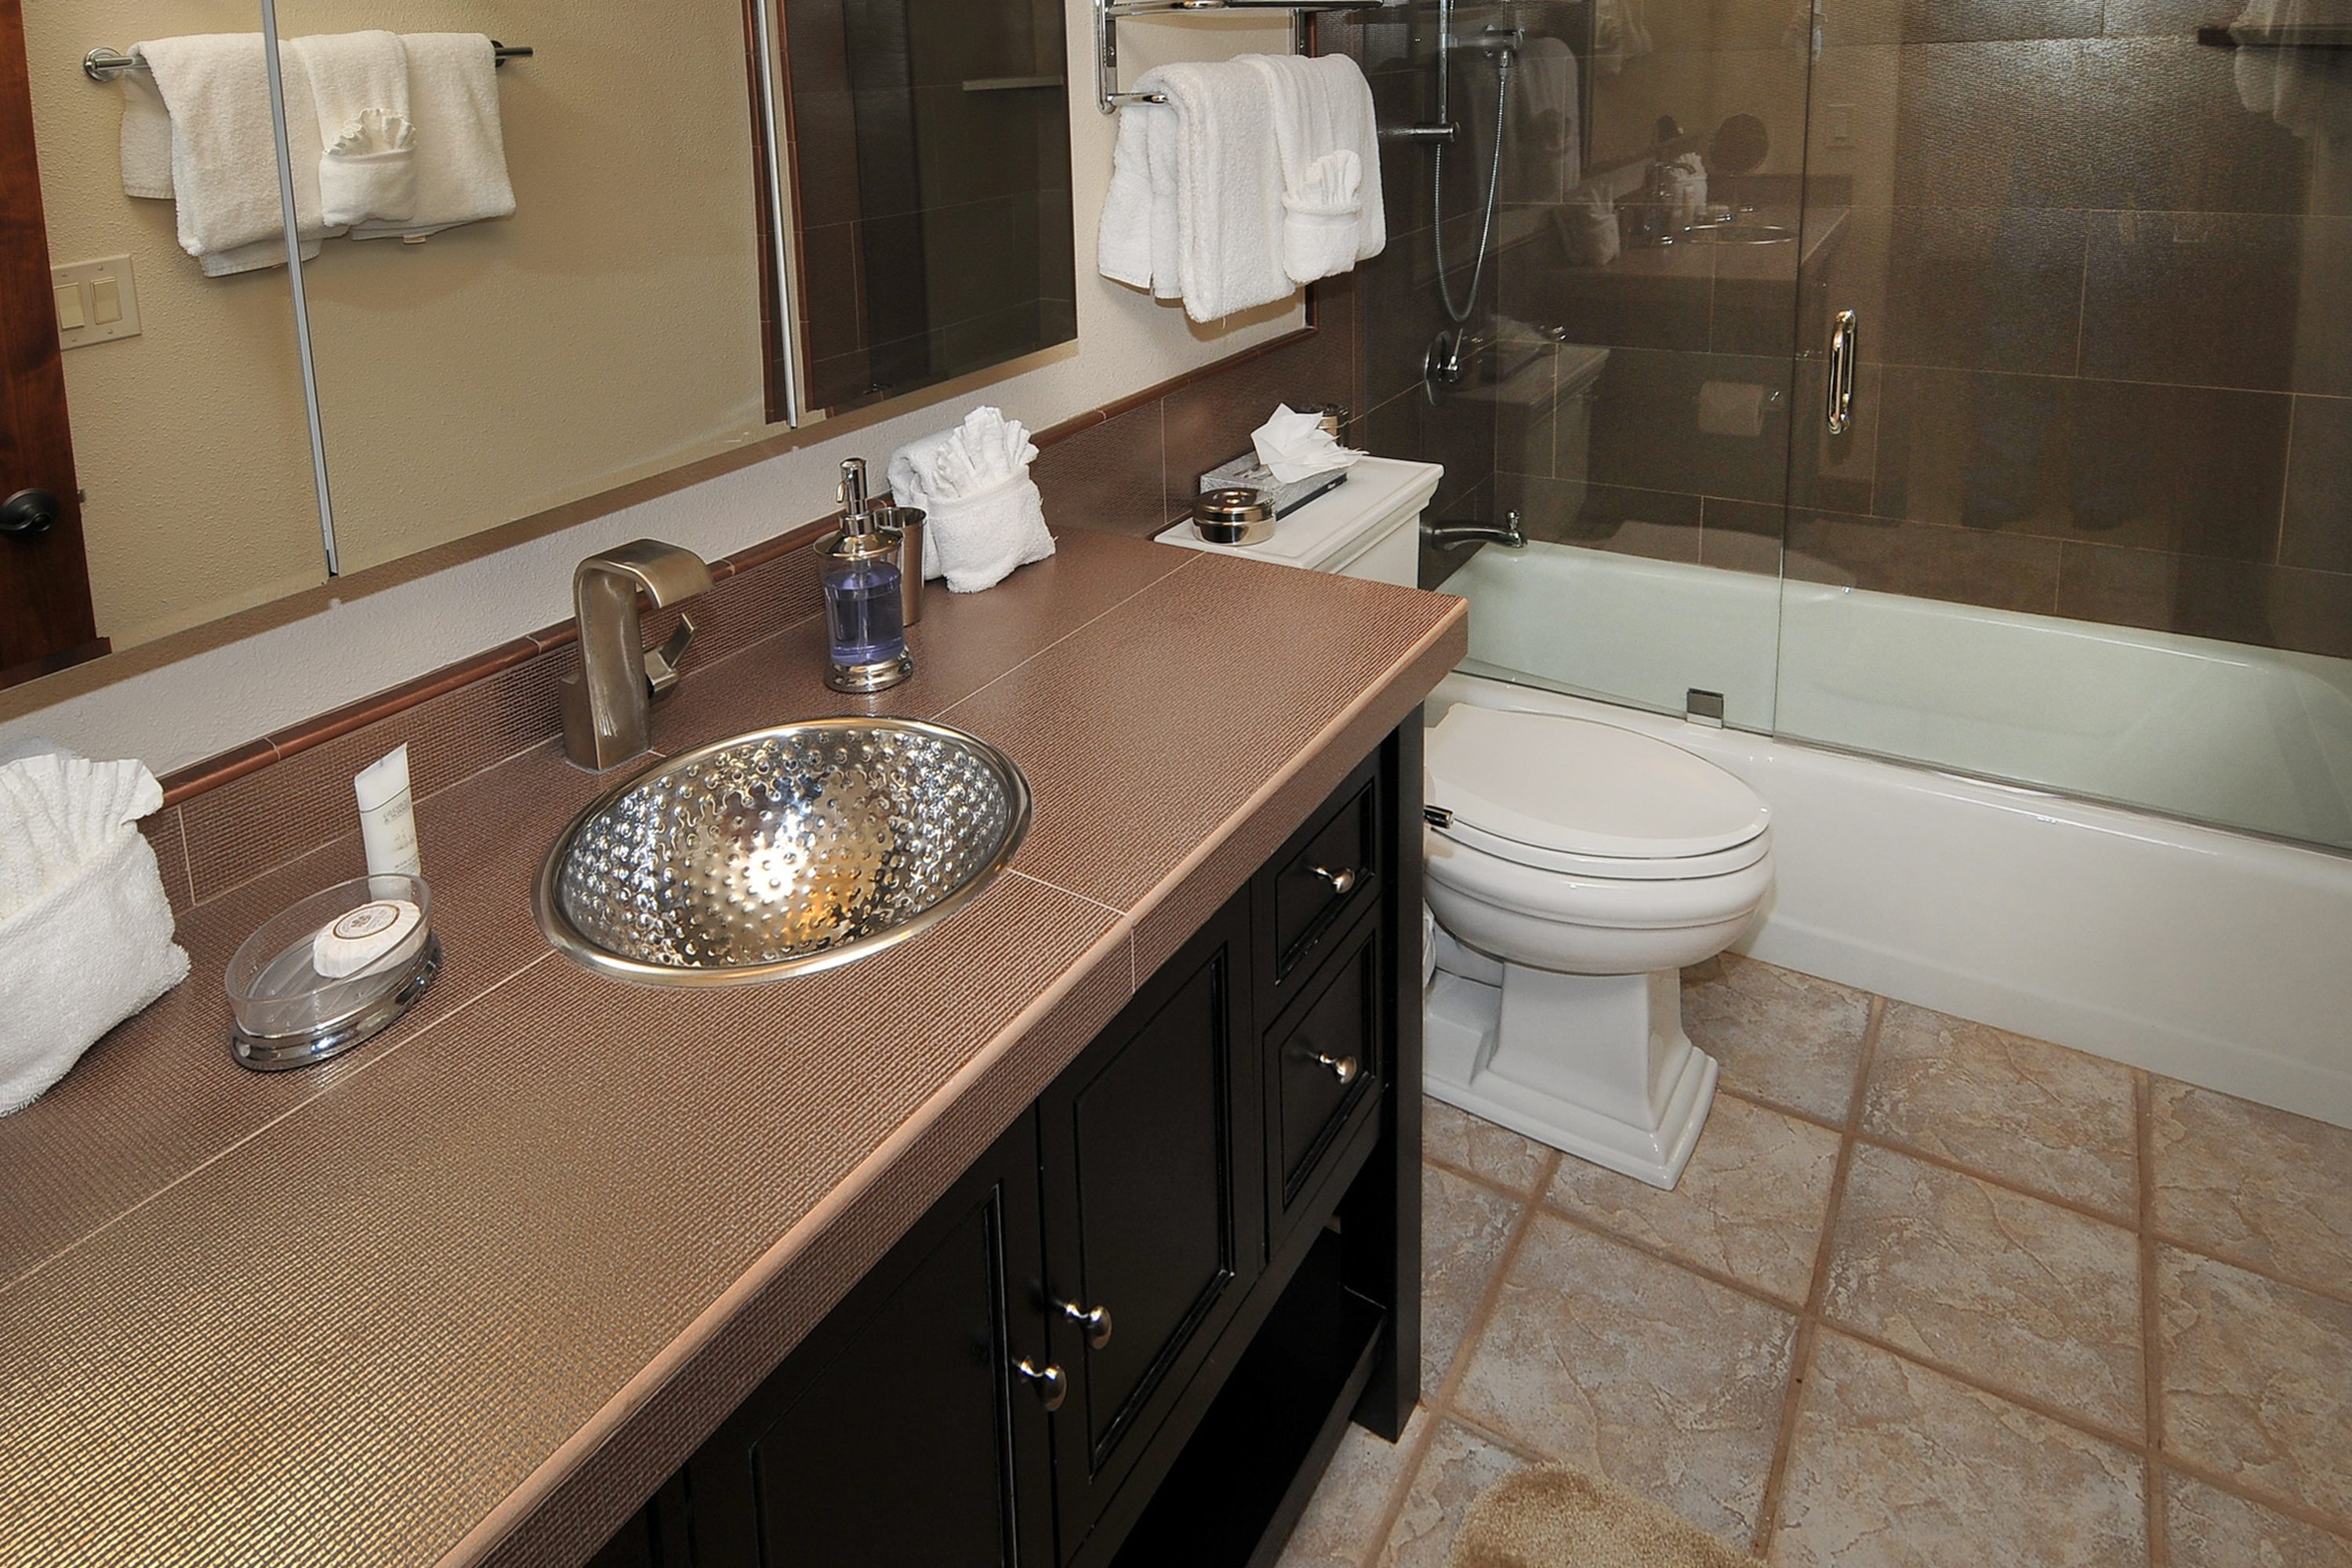 Newly remodeled bathrooms!